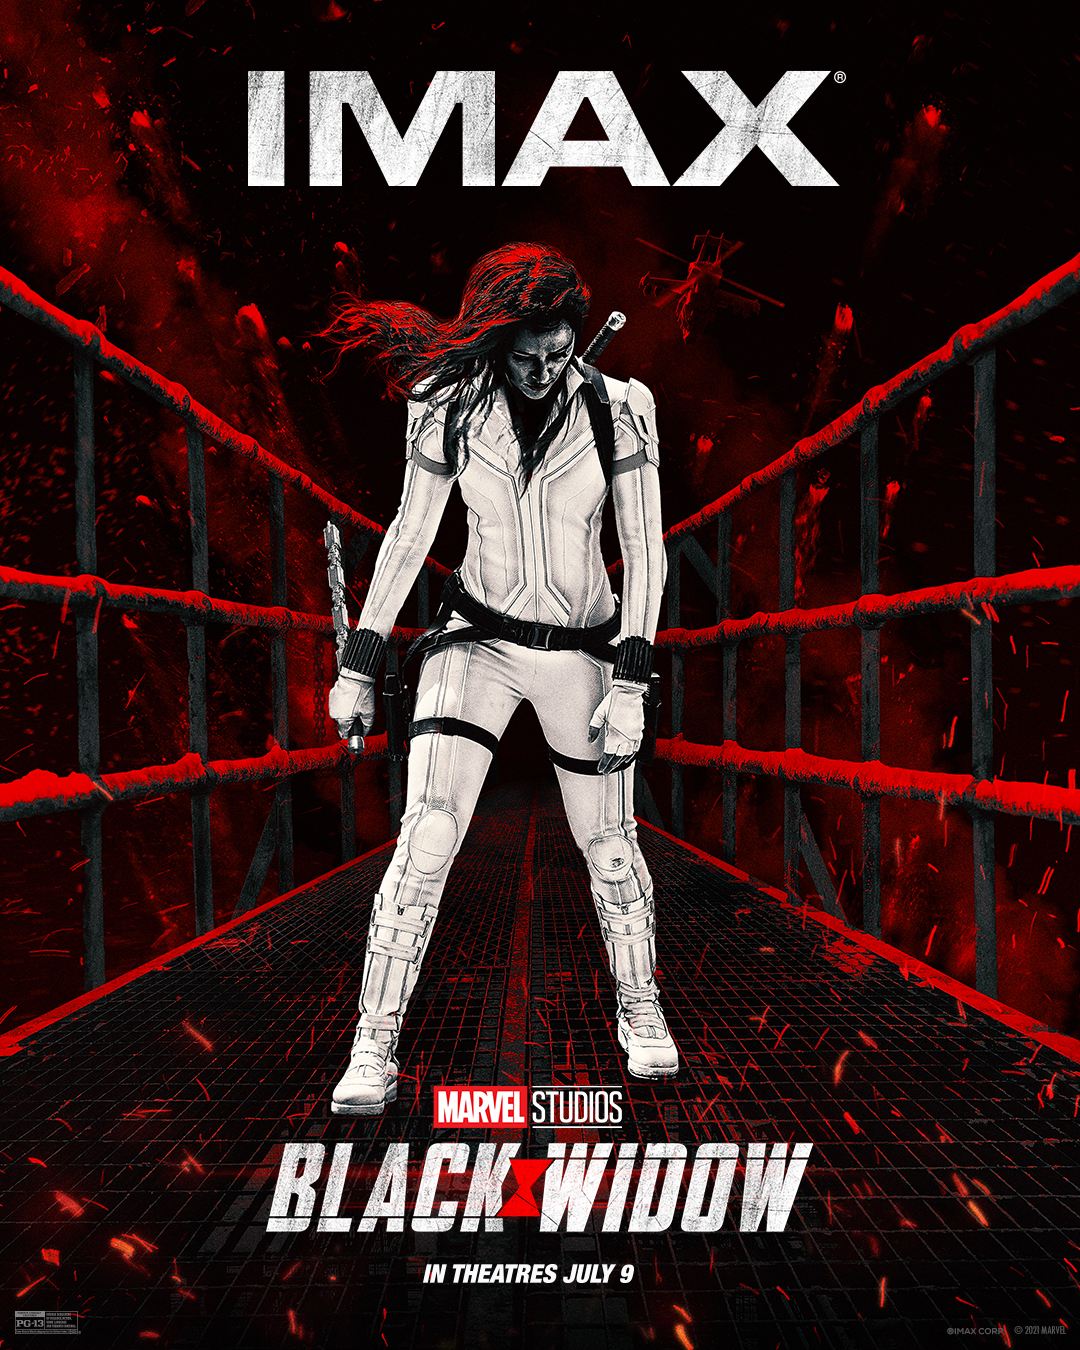 Movie poster image for BLACK WIDOW in IMAX